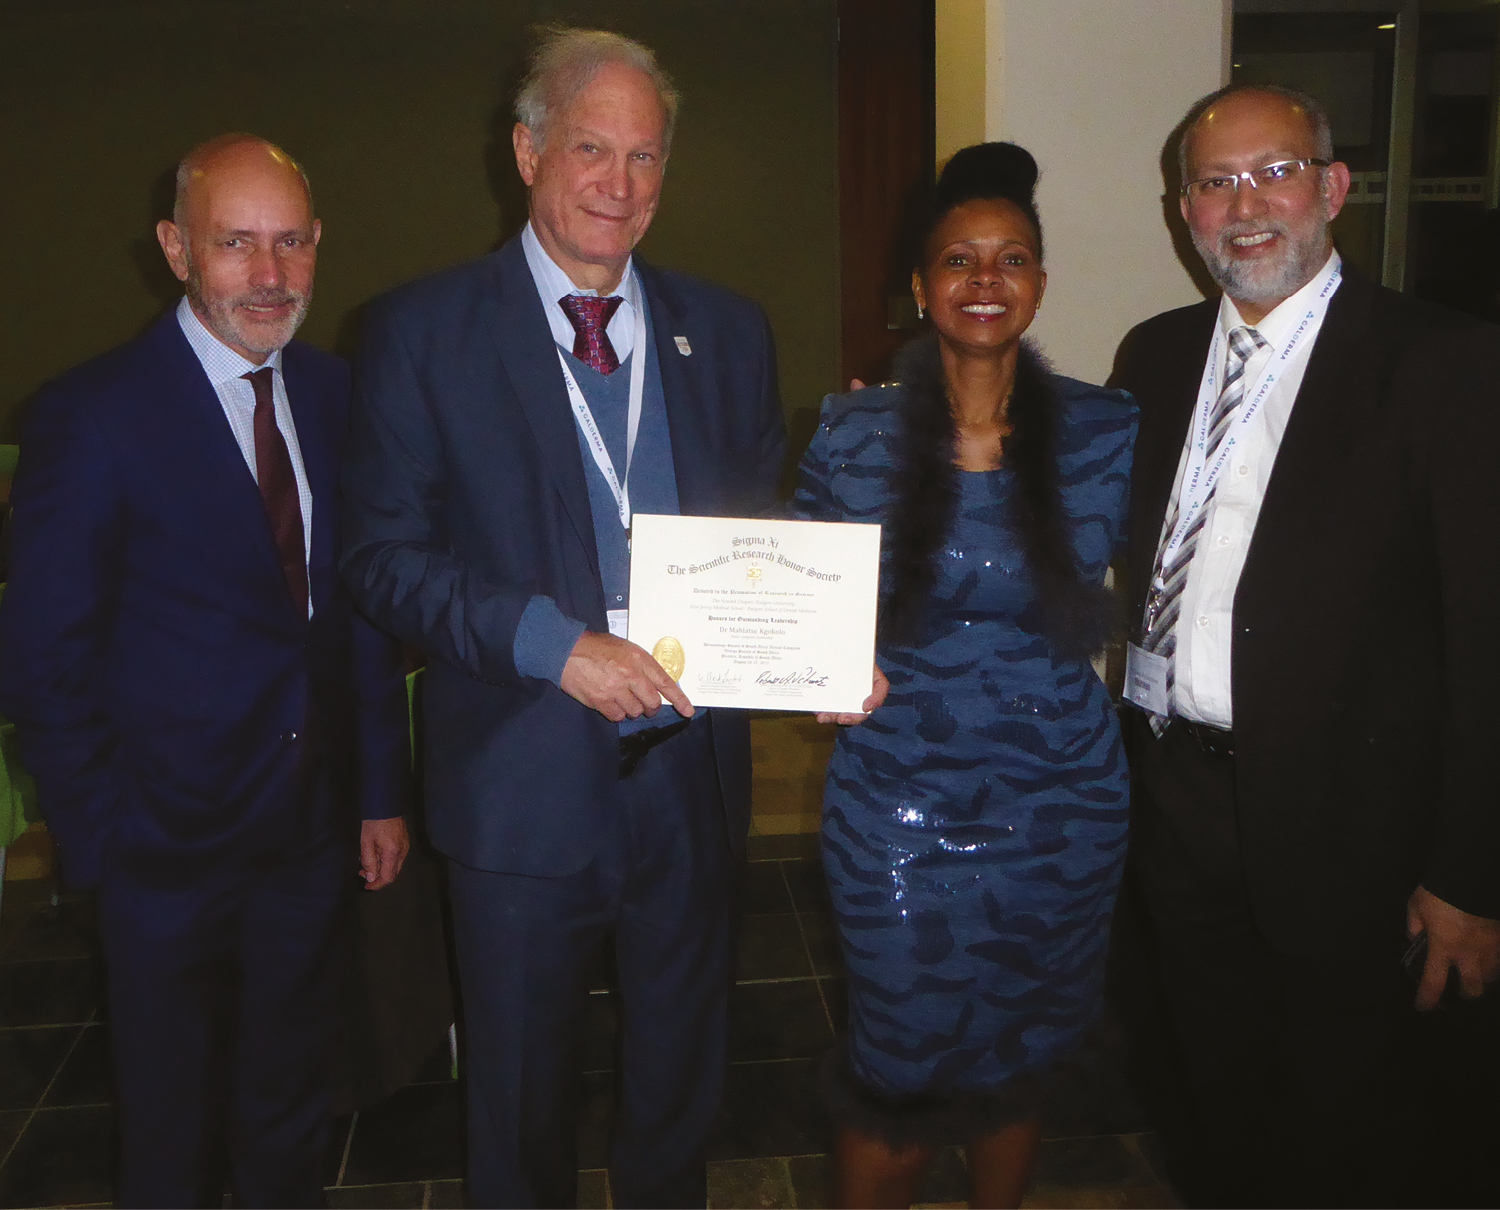 Figure 1: Conference Committee Chairs Mahlatse Kgokolo and Noufal Raboobee, who is also Vitiligo Society of South Africa President, are honored by Prof. Robert A. Schwartz with a Sigma Xi leadership recognition award, appreciated by Prof. Christopher EM Griffiths